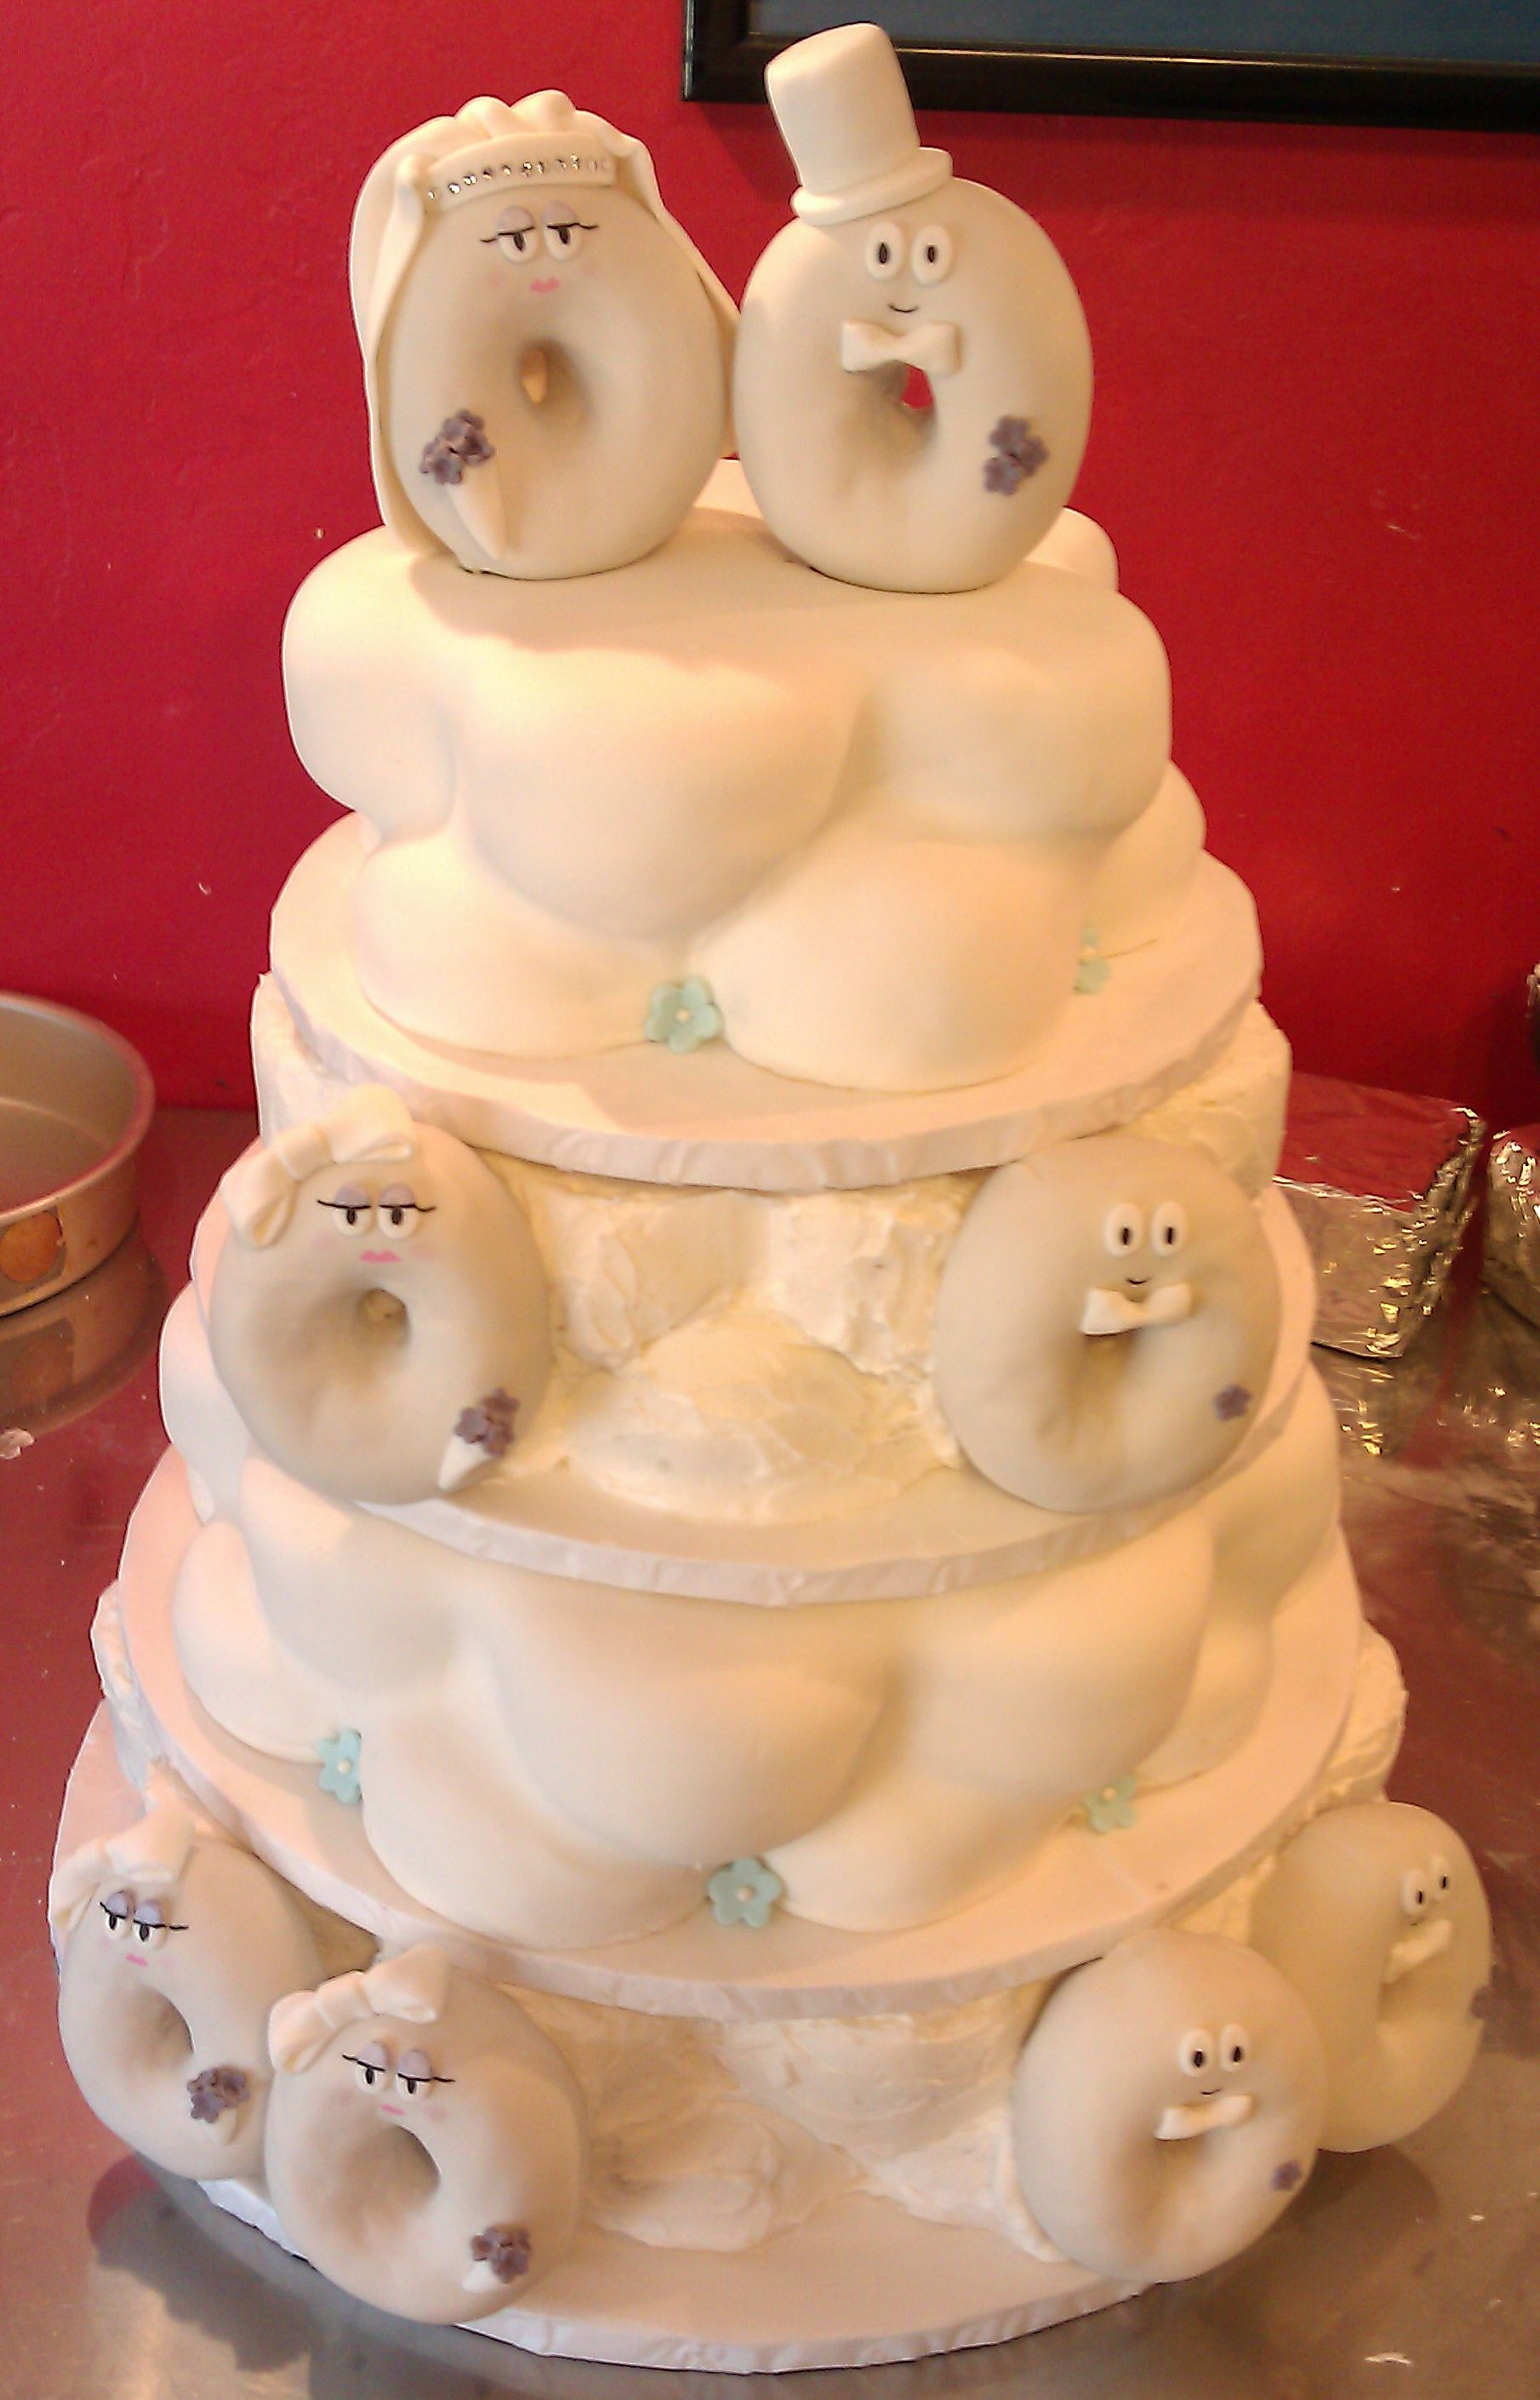 Donut wedding cakes?  Pseriously?  Only at Psycho Donuts! Copyright Psycho Donuts, All Rights Reserved.